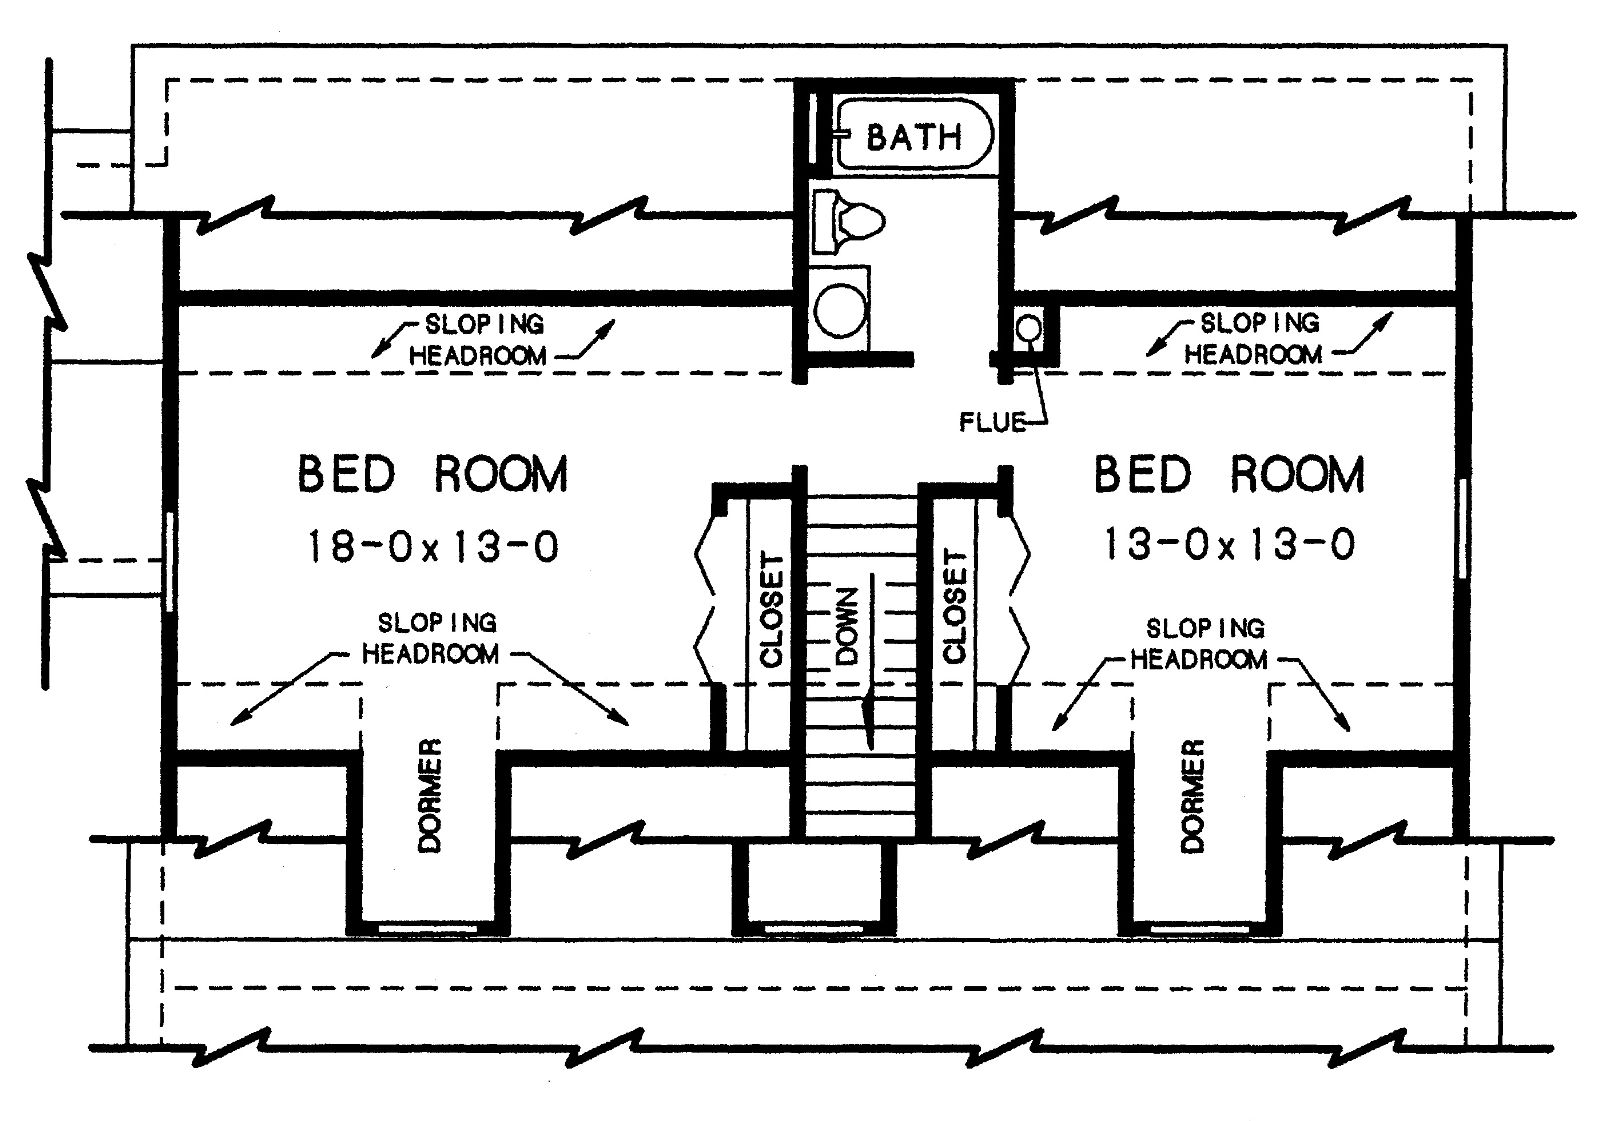 2nd floor plan - Second Floor Floor Plans